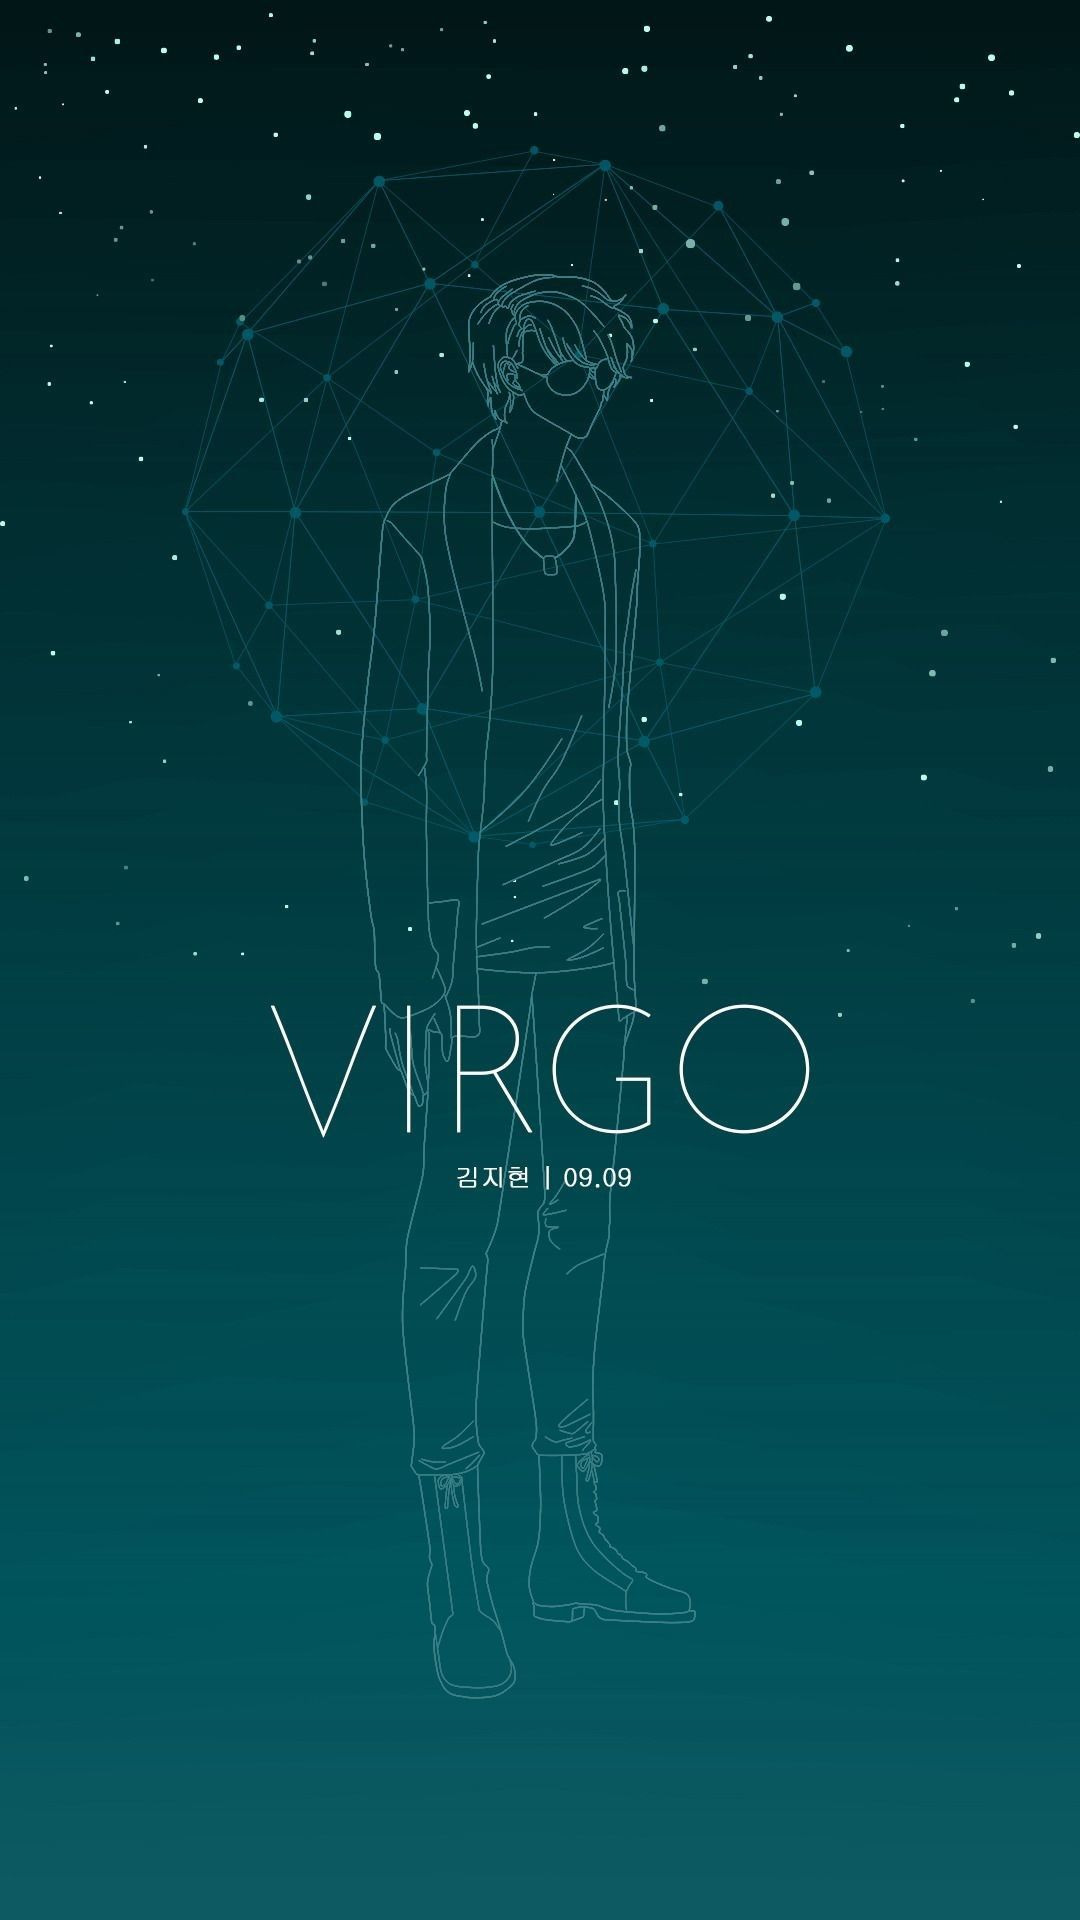 Use Virgo Wallpaper to Enhance Your Workplace